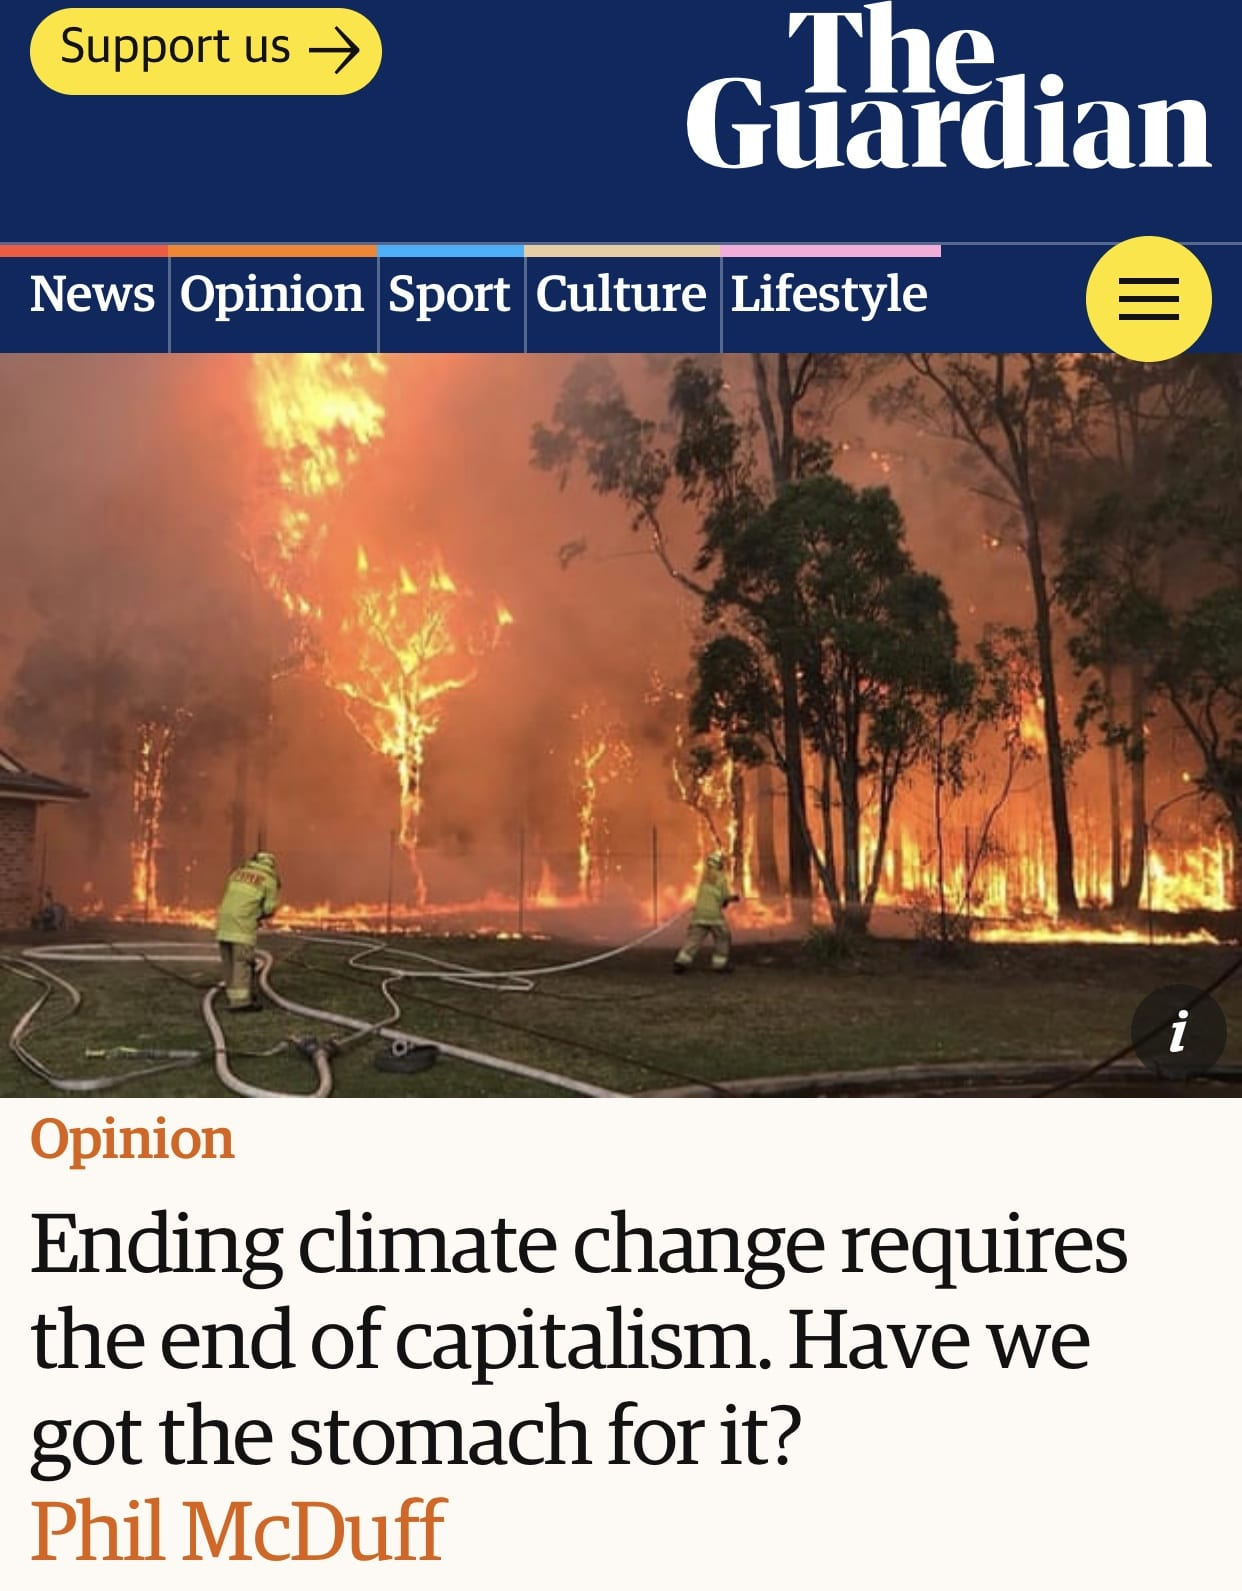 Ending climate change requires the end of capitalism. Have we got the stomach for it? #sustainable system